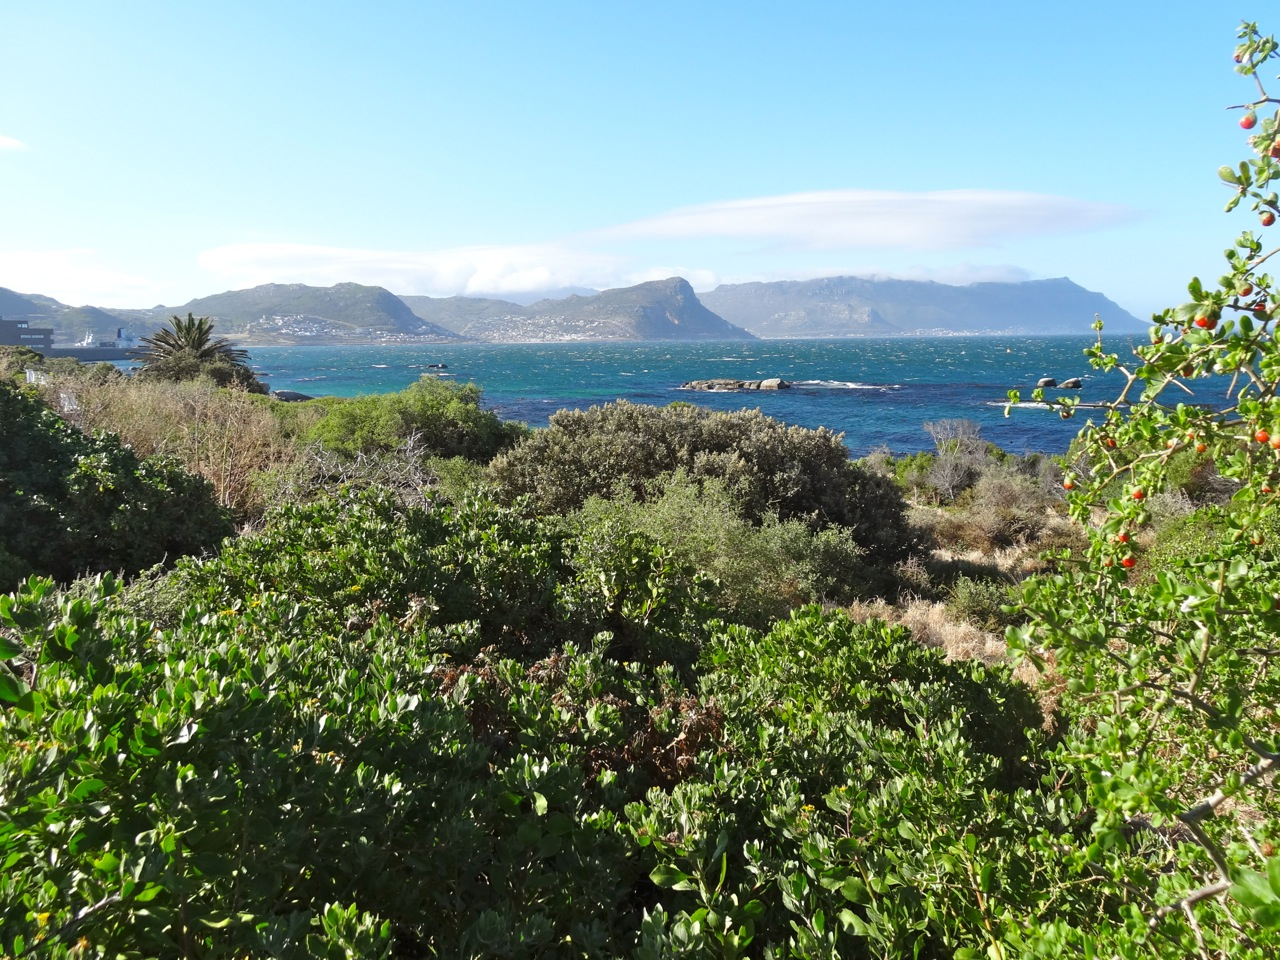 Landscape of the Cape Peninsula